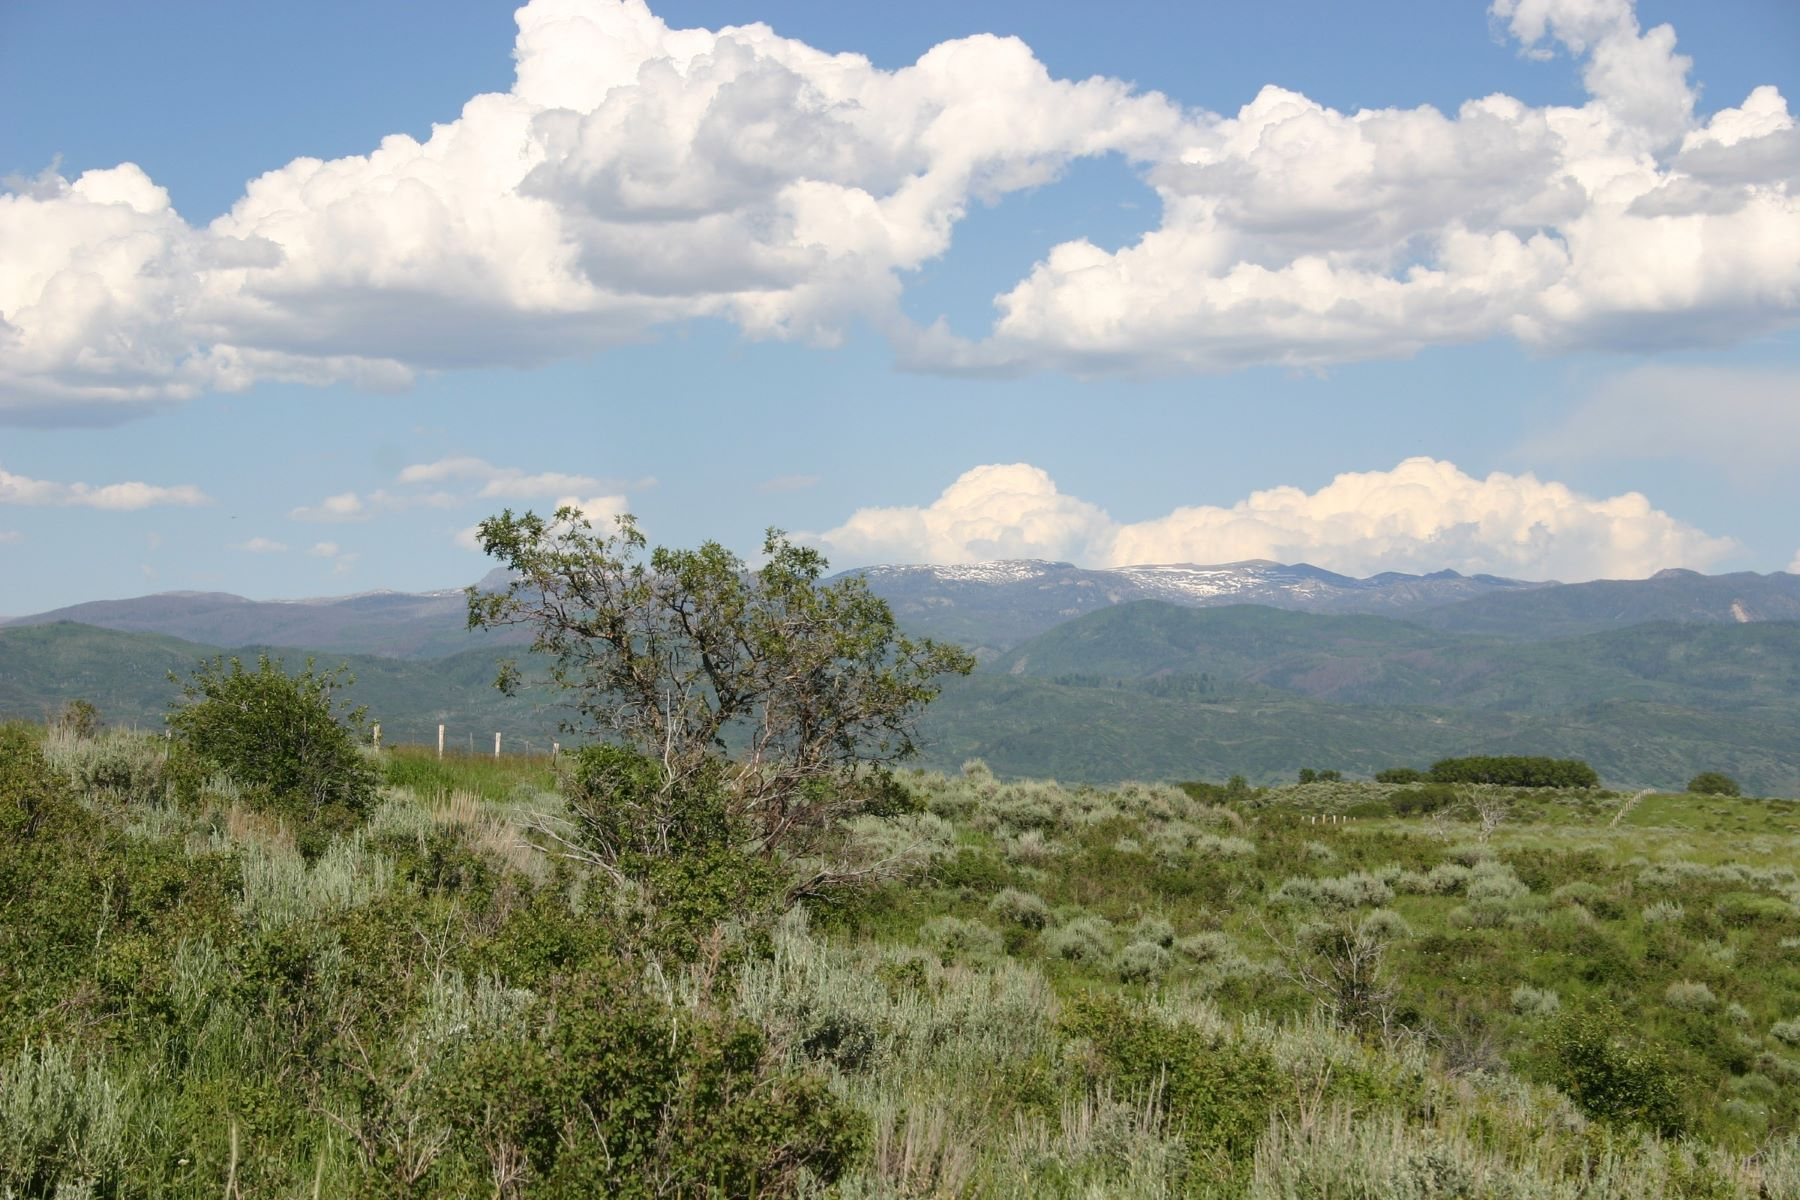 Land for Sale at Secluded & Affordable TBD RCR 46 Lots 7 & 8 Steamboat Springs, Colorado 80487 United States